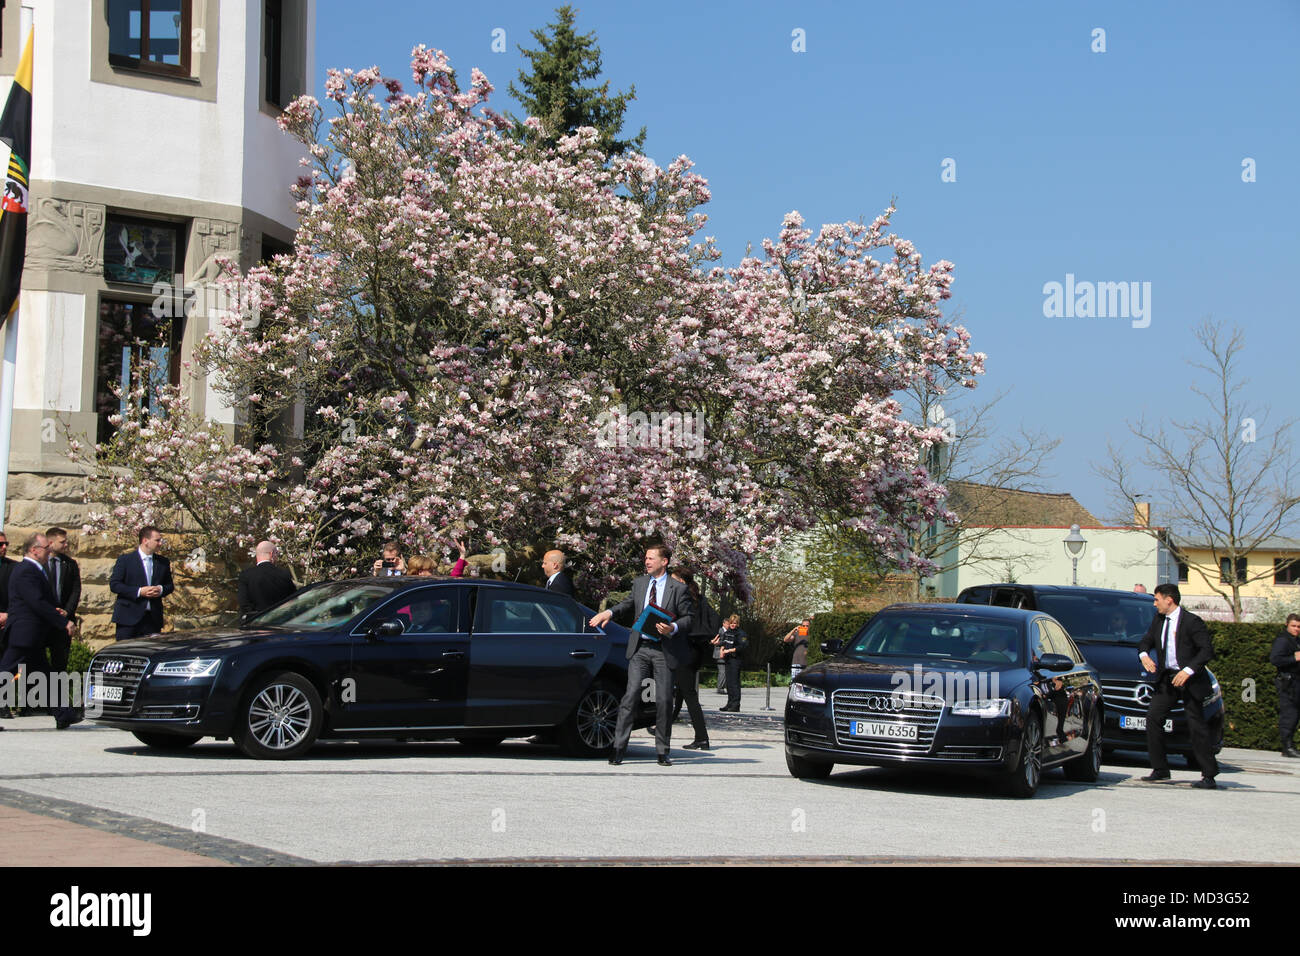 Bad Schmiedeberg, Germany - April 18, 2018: German Chancellor Angela Merkel arrives in Bad Schmiedeberg for the conference of East German Prime Ministers. Credit: Mattis Kaminer/Alamy Live News - Stock Image